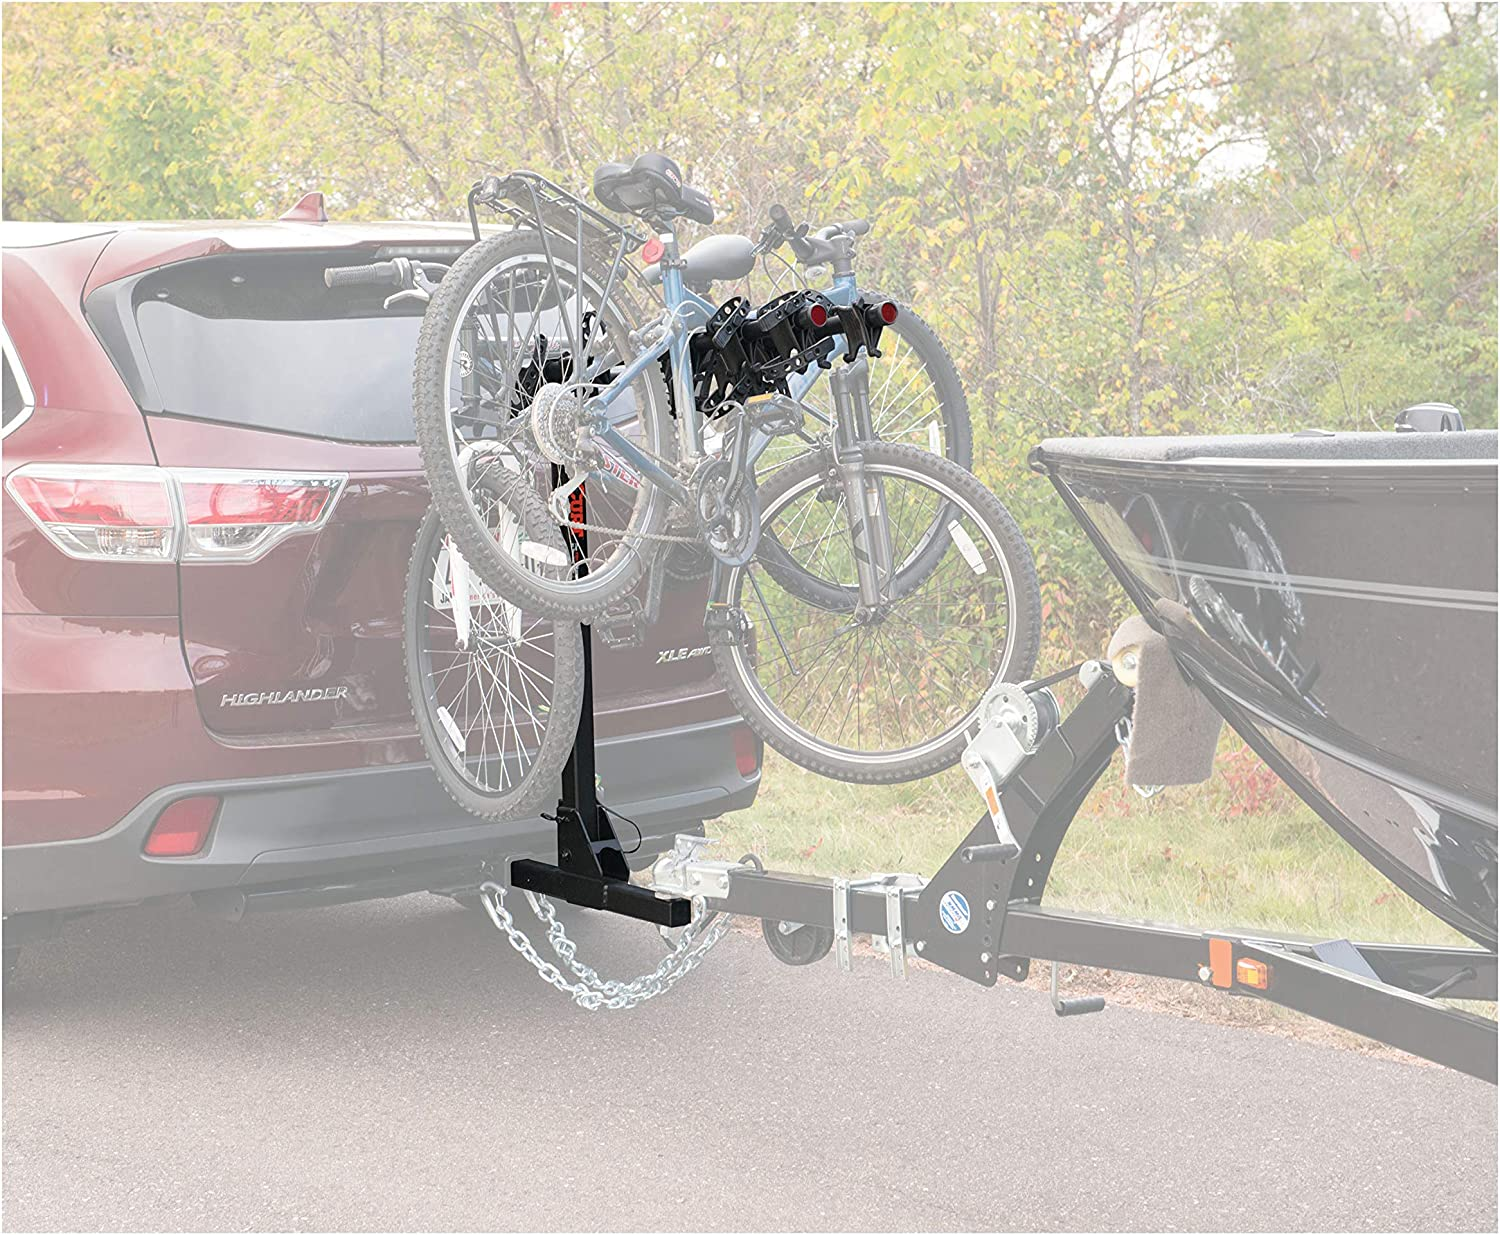 CURT 18035 Towable Trailer Hitch Bike Rack Mount Fits 2-Inch Receiver 2,000 lbs 4 Bicycles